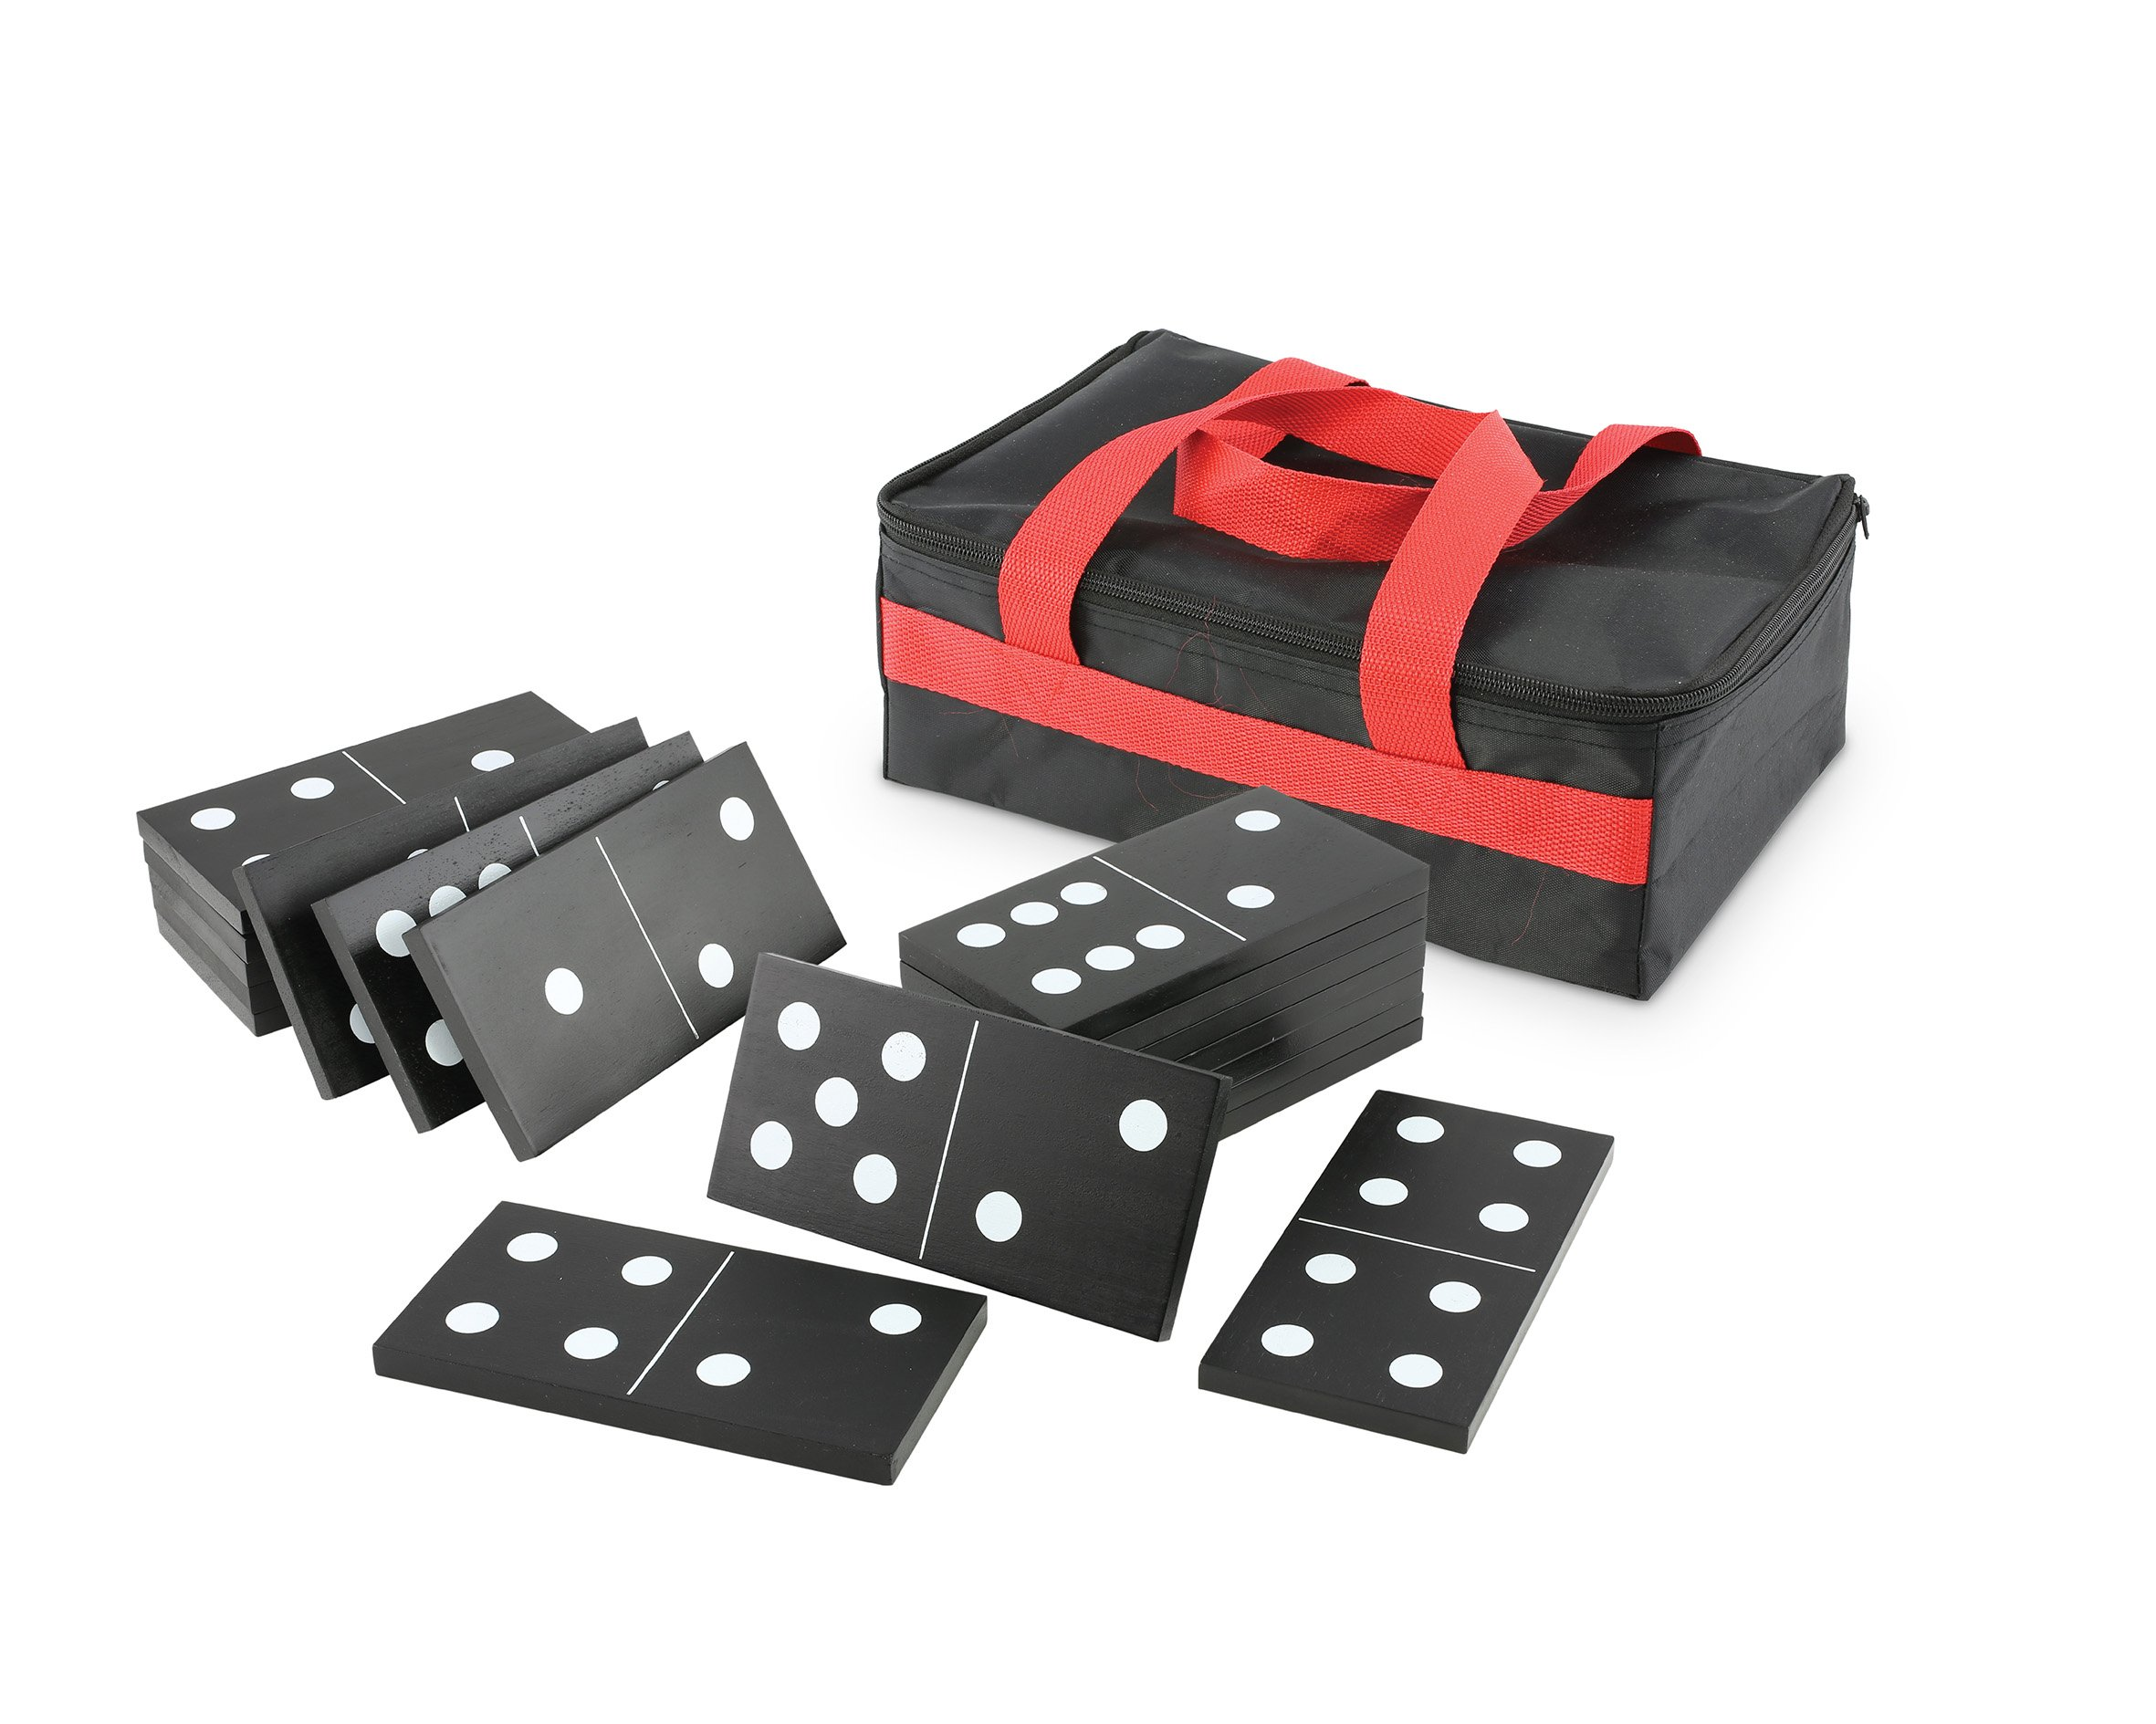 Kovot Oversize Wood Dominoes Set With Carry Bag - Includes 28 Domino Tiles 7'' x 3 1/2 x 1/2 Each